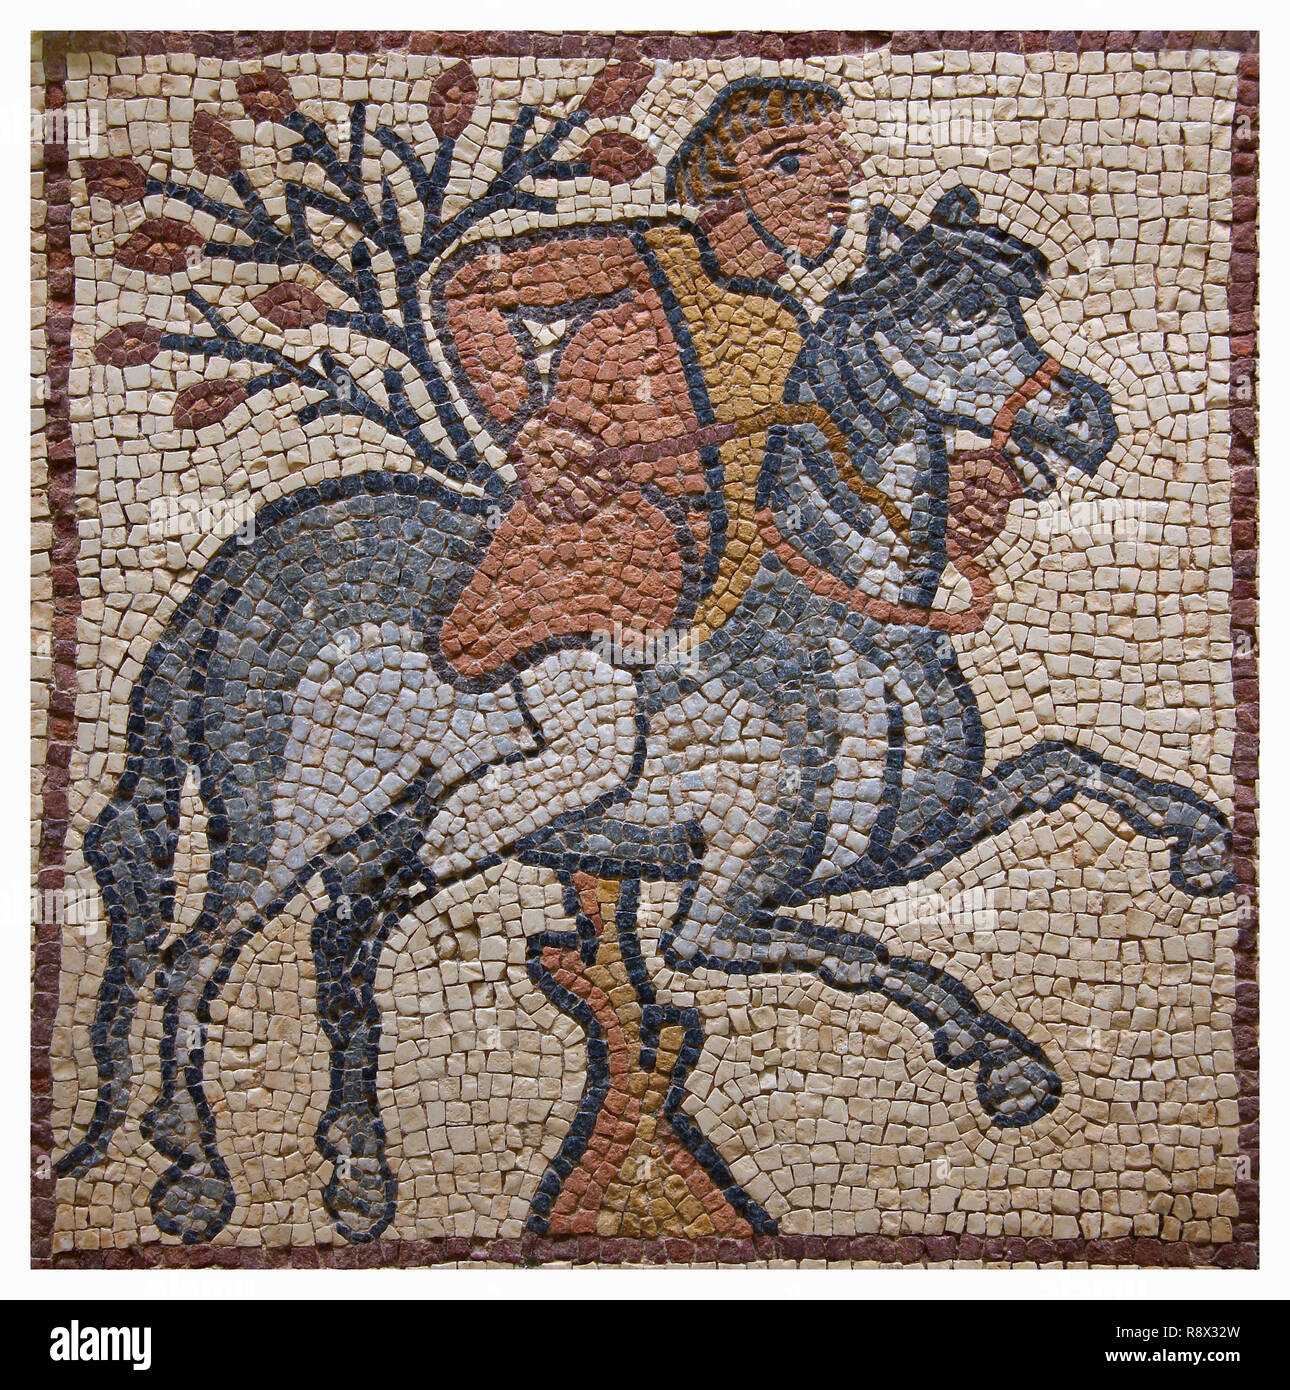 Libya Cyrenaica Qsar Ancient well preserved Byzantine mosaic depicting a horseman riding hs horse - Stock Image